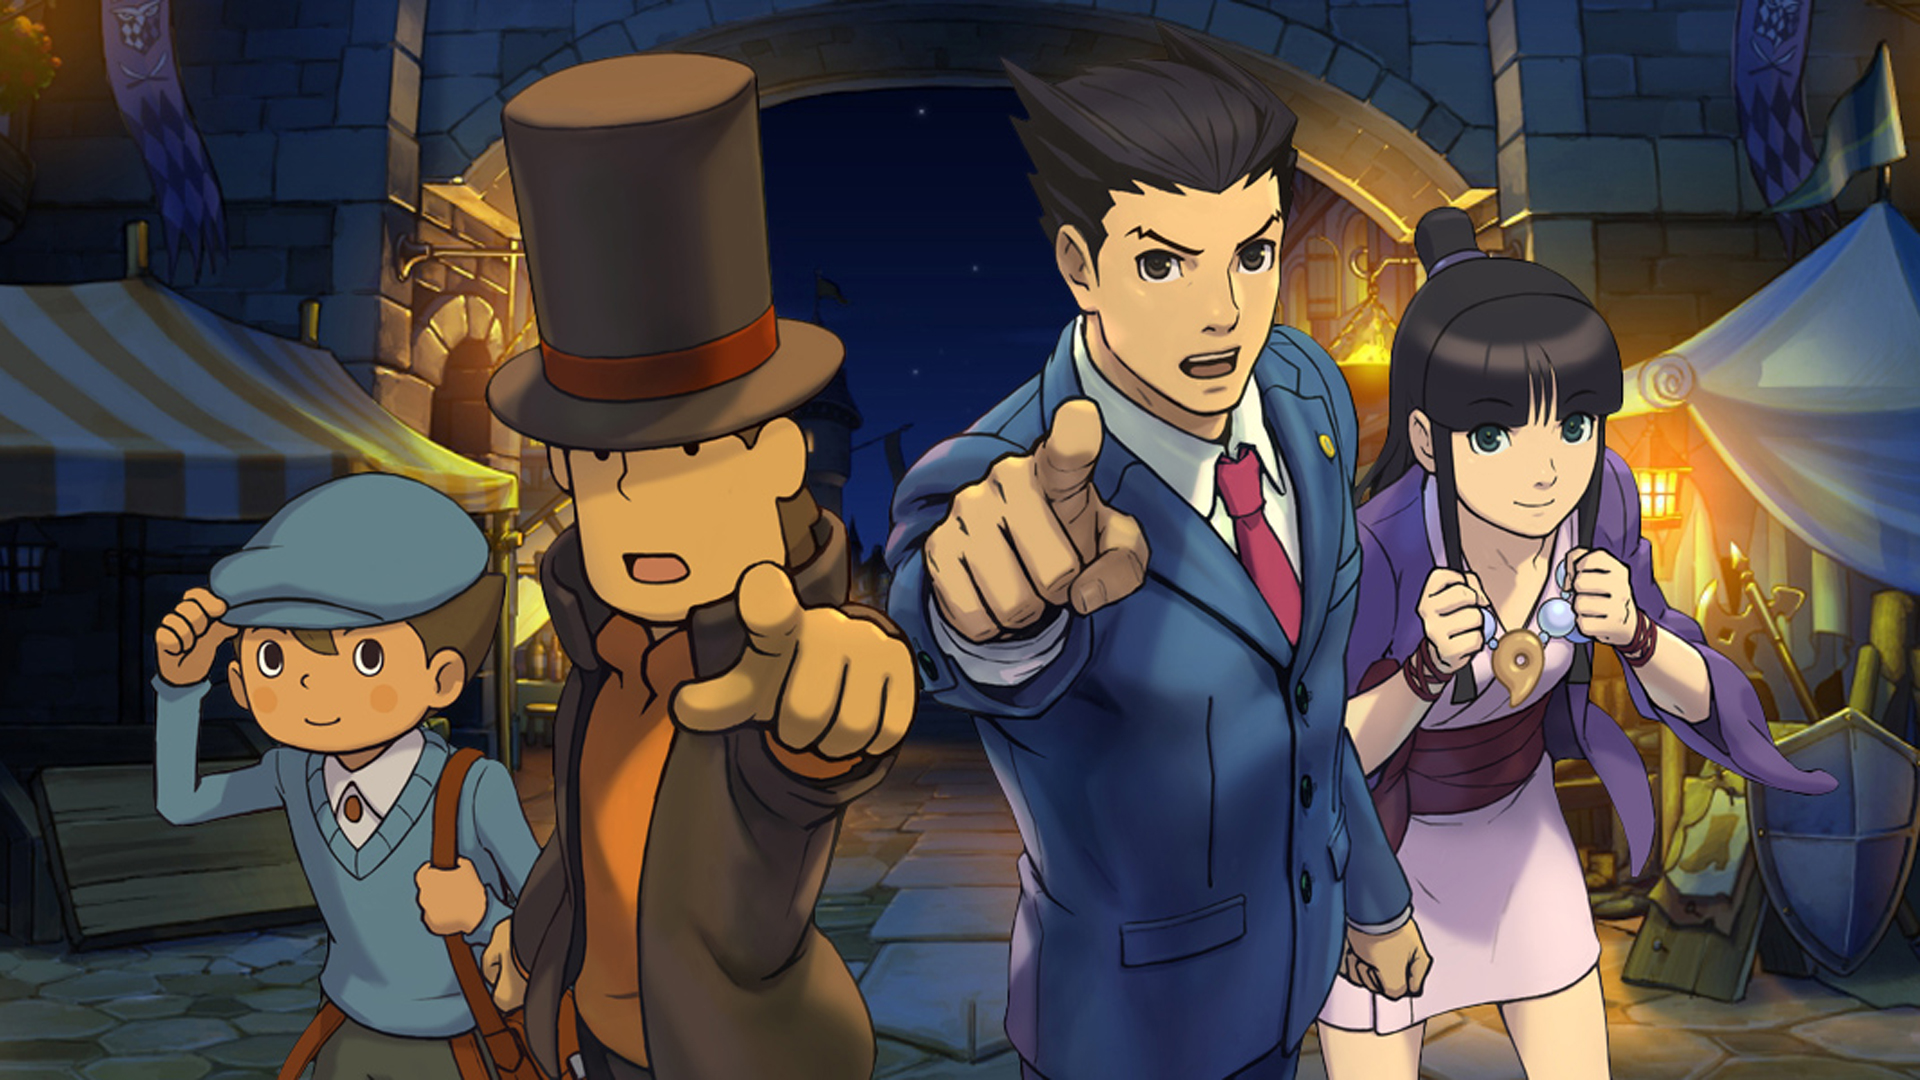 Professor Layton on the left and Phoenix Wright on the right